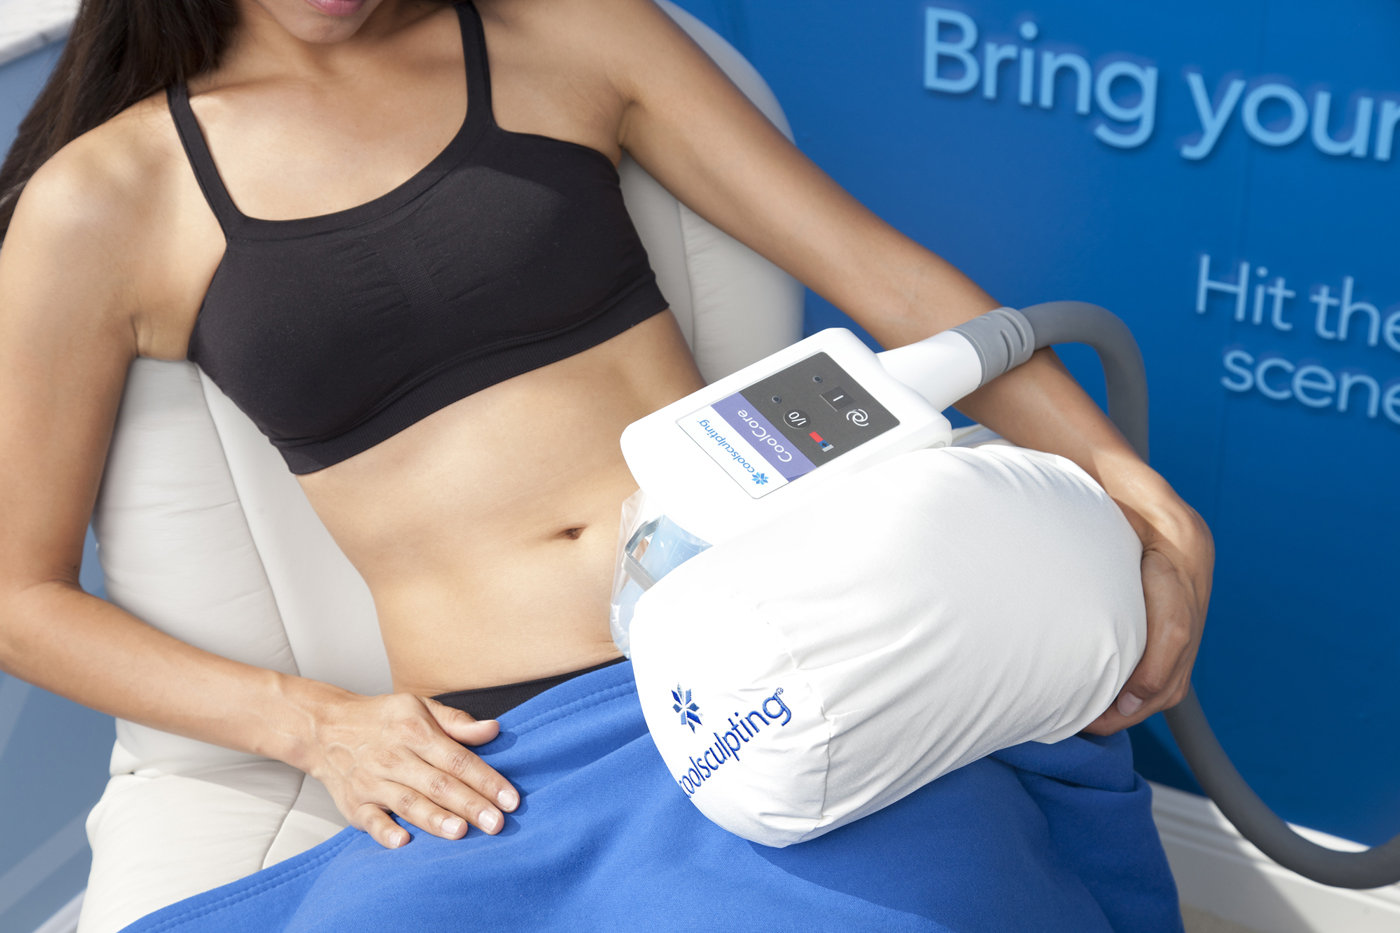 woman getting a coolsculpting procedure done